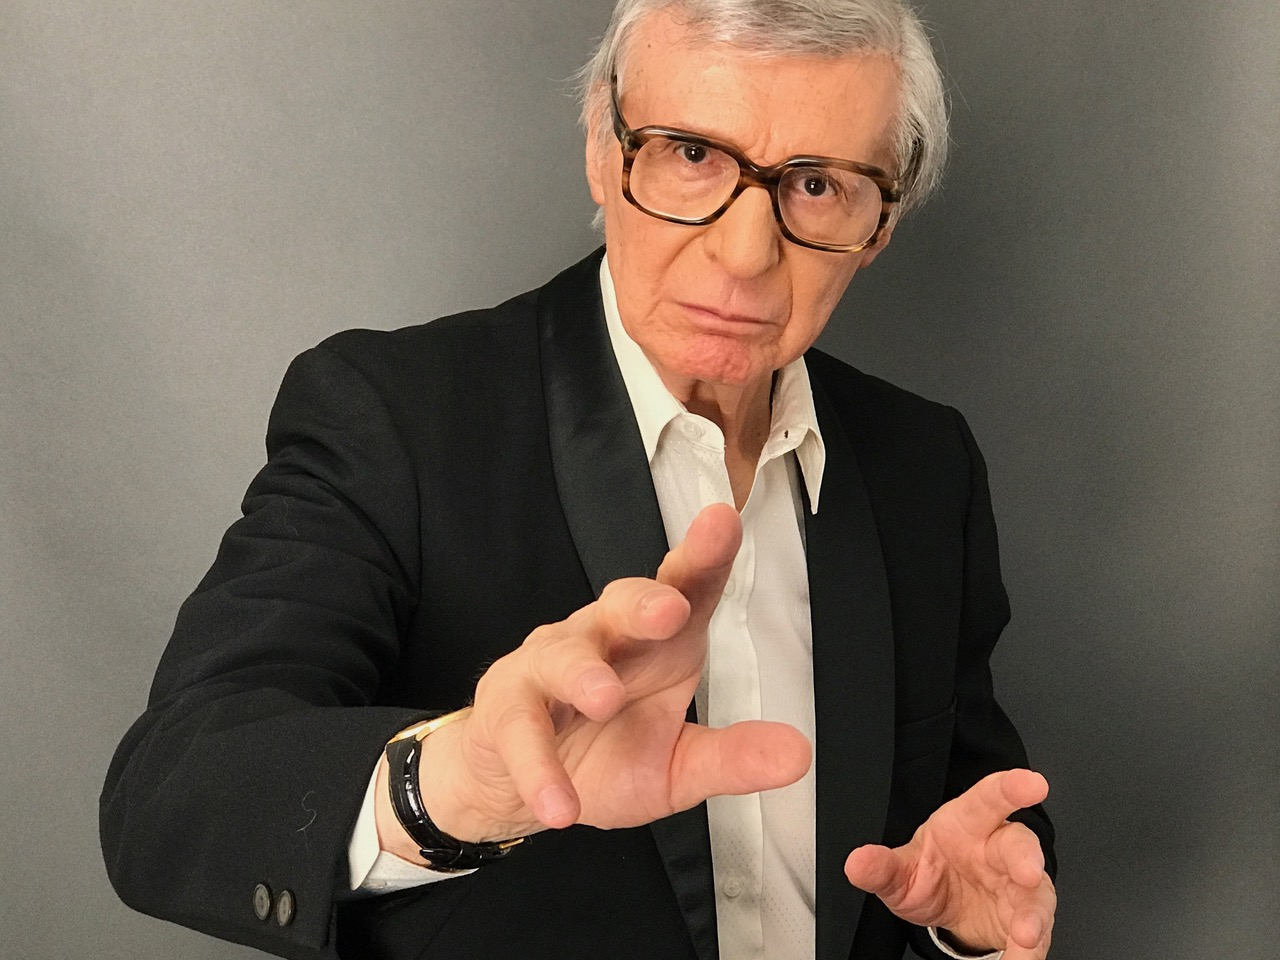 AMAZING KRESKIN - July 2-4, 2021 Show